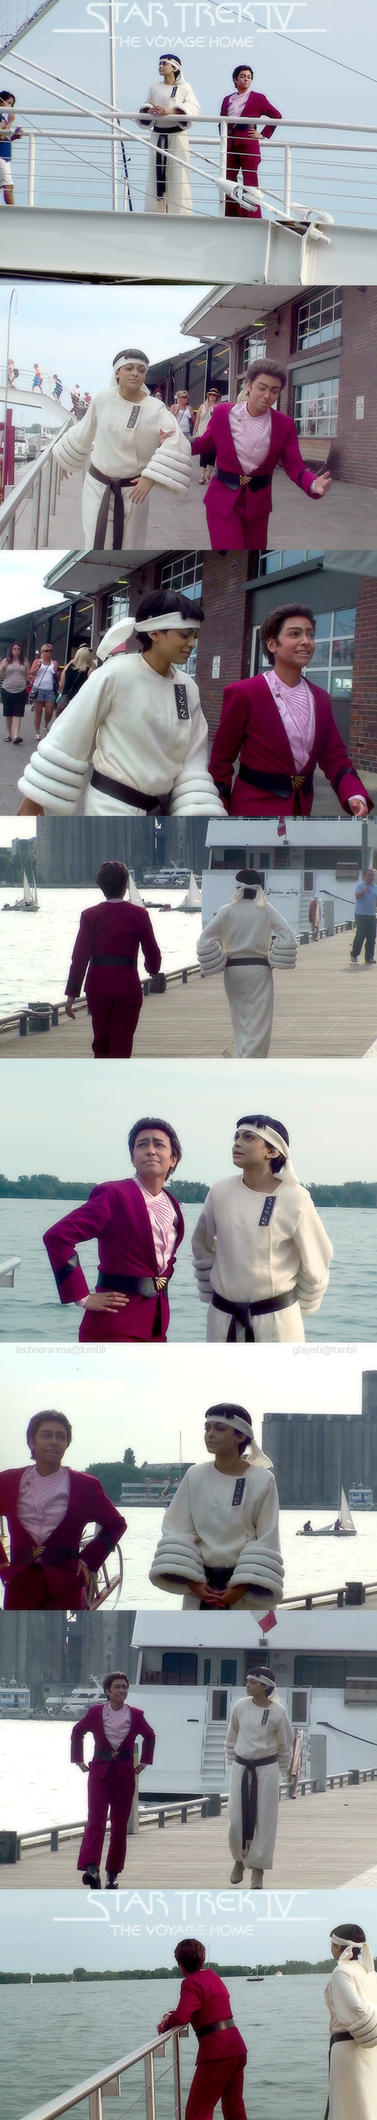 Star Trek IV: The Voyage Home COSPLAY by TechnoRanma